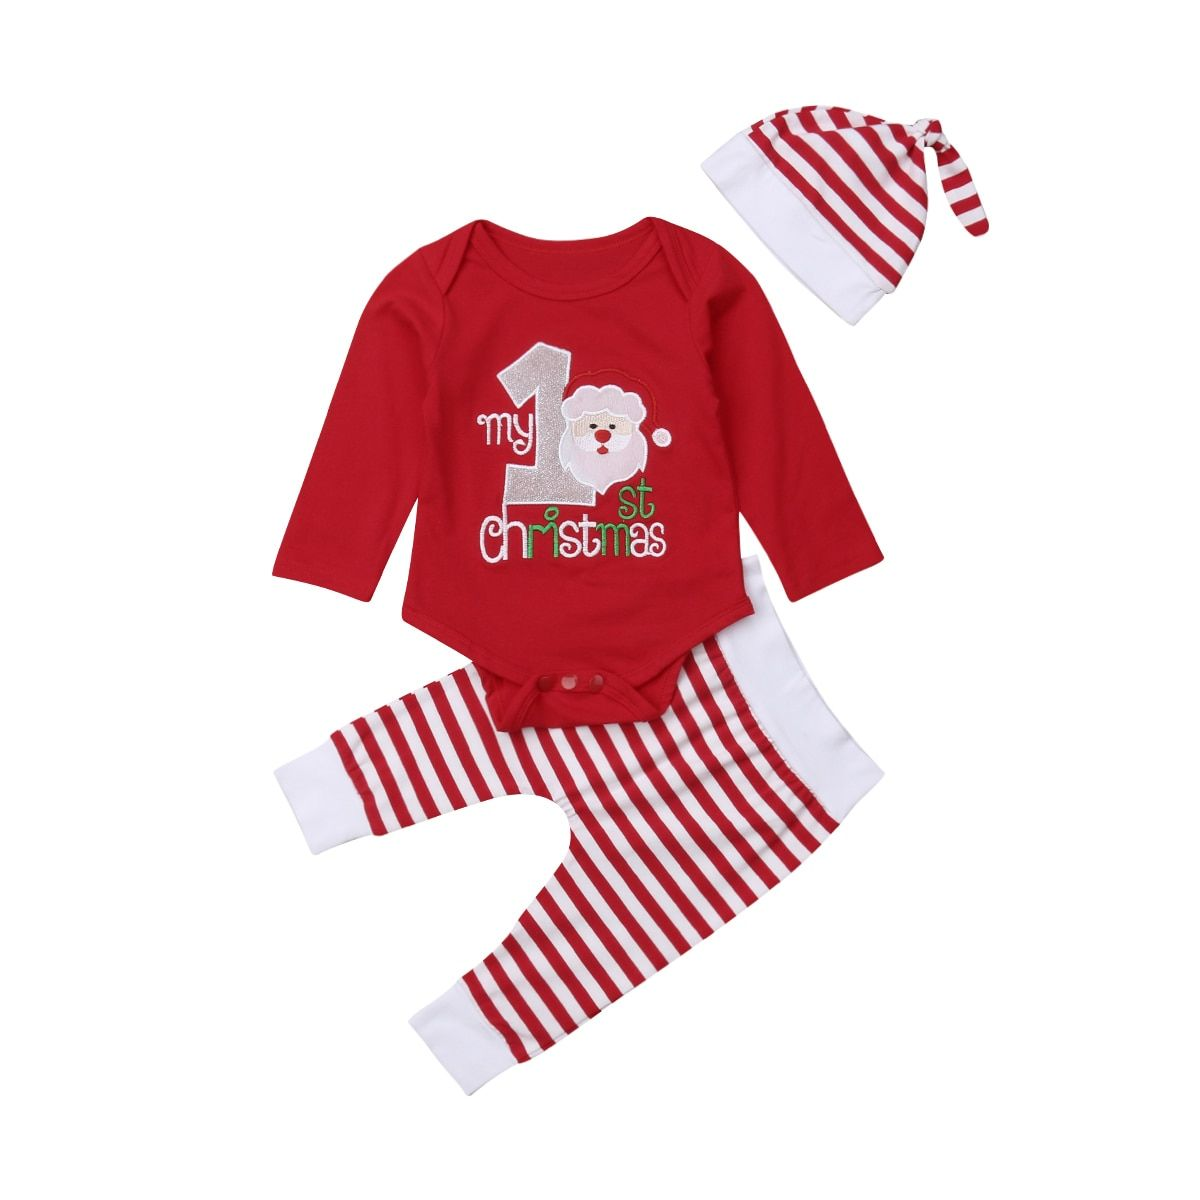 b1d8ebb15cb08 Stock Newborn Infant Baby Boy Girls Christmas Romper Clothes Outfit Playsuit